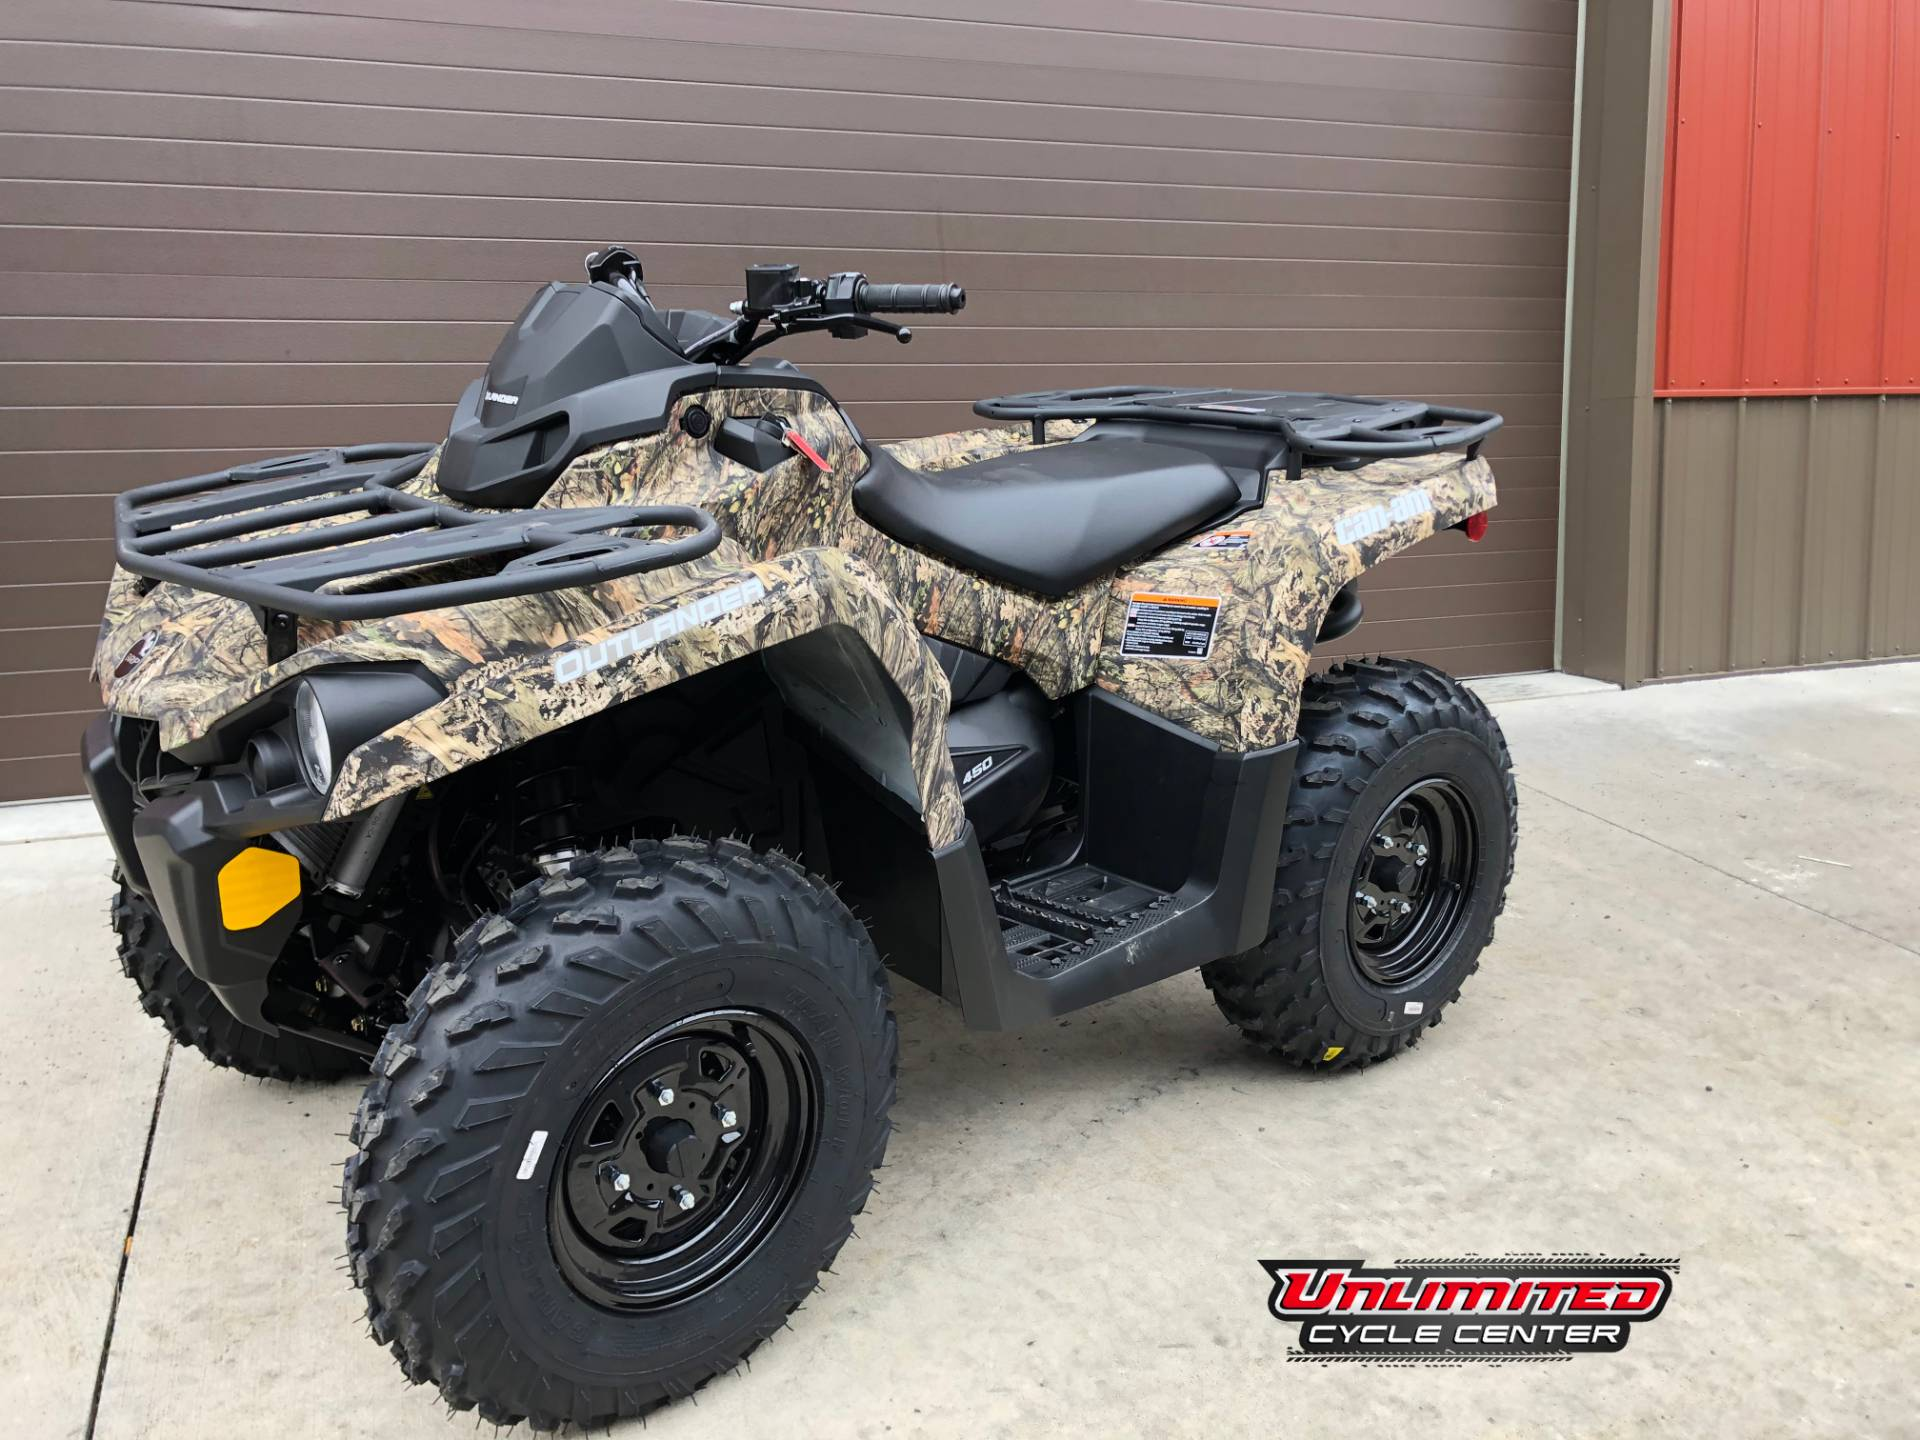 2021 Can-Am Outlander DPS 450 in Tyrone, Pennsylvania - Photo 1